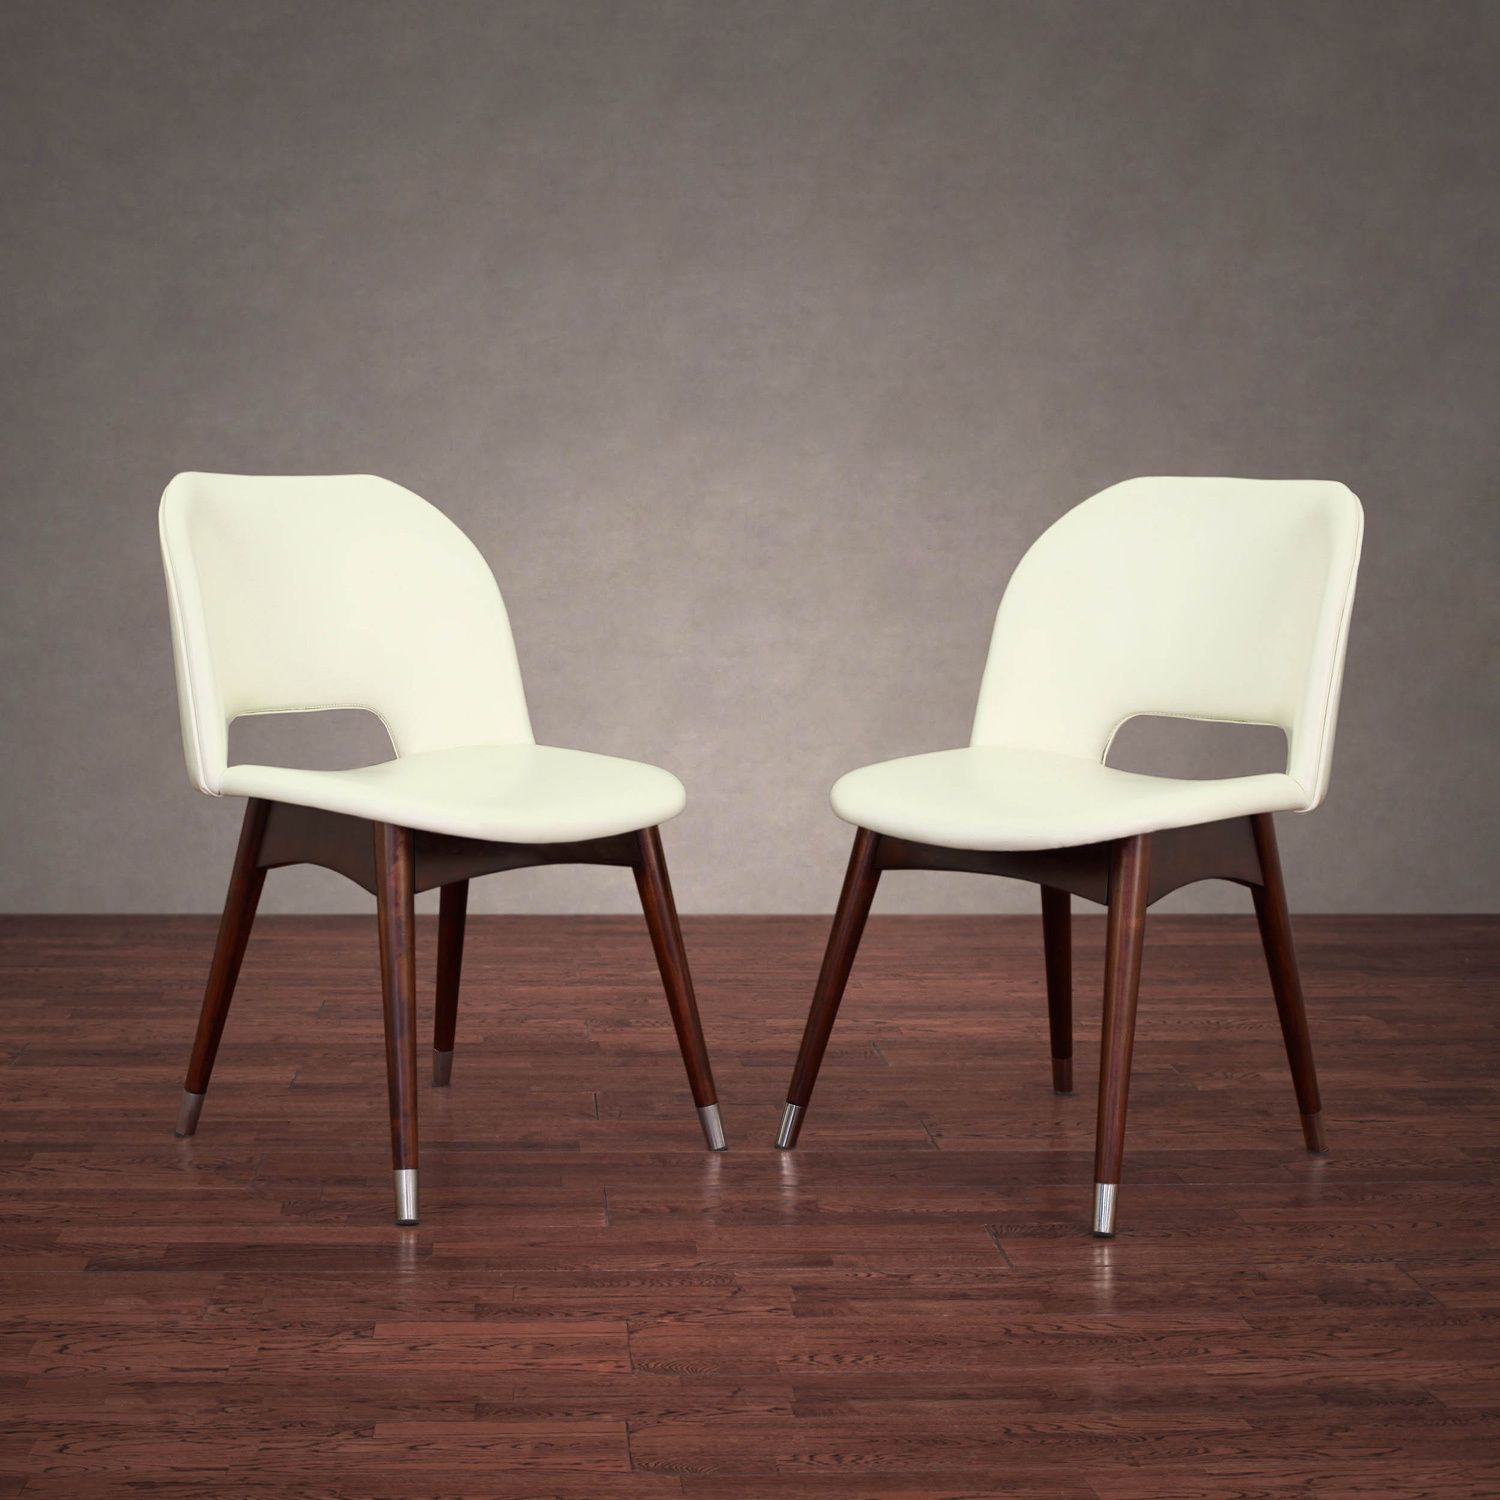 Etonnant Betty Modern White Leather Dining Chairs (Set Of 2)   Overstock Shopping    Great